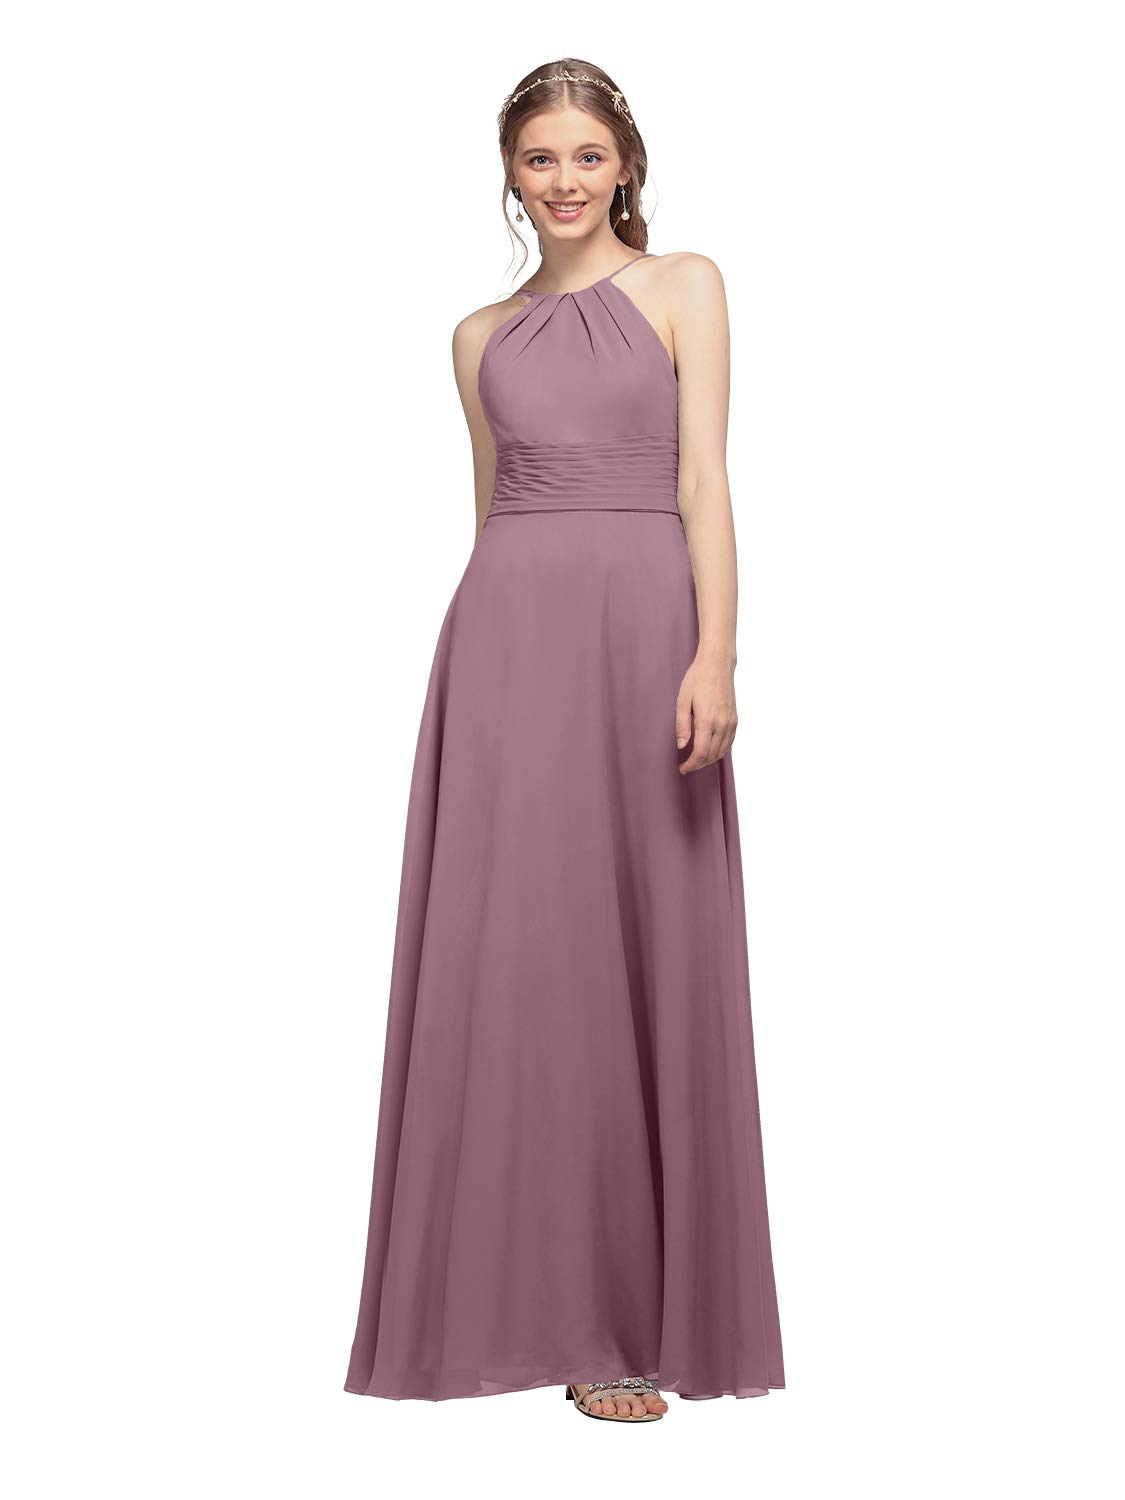 1615548bbffc4 AW Halter Chiffon Bridesmaid Dresses Long Prom Formal Wedding Party Dress  for Women, Mauve Mist, US0